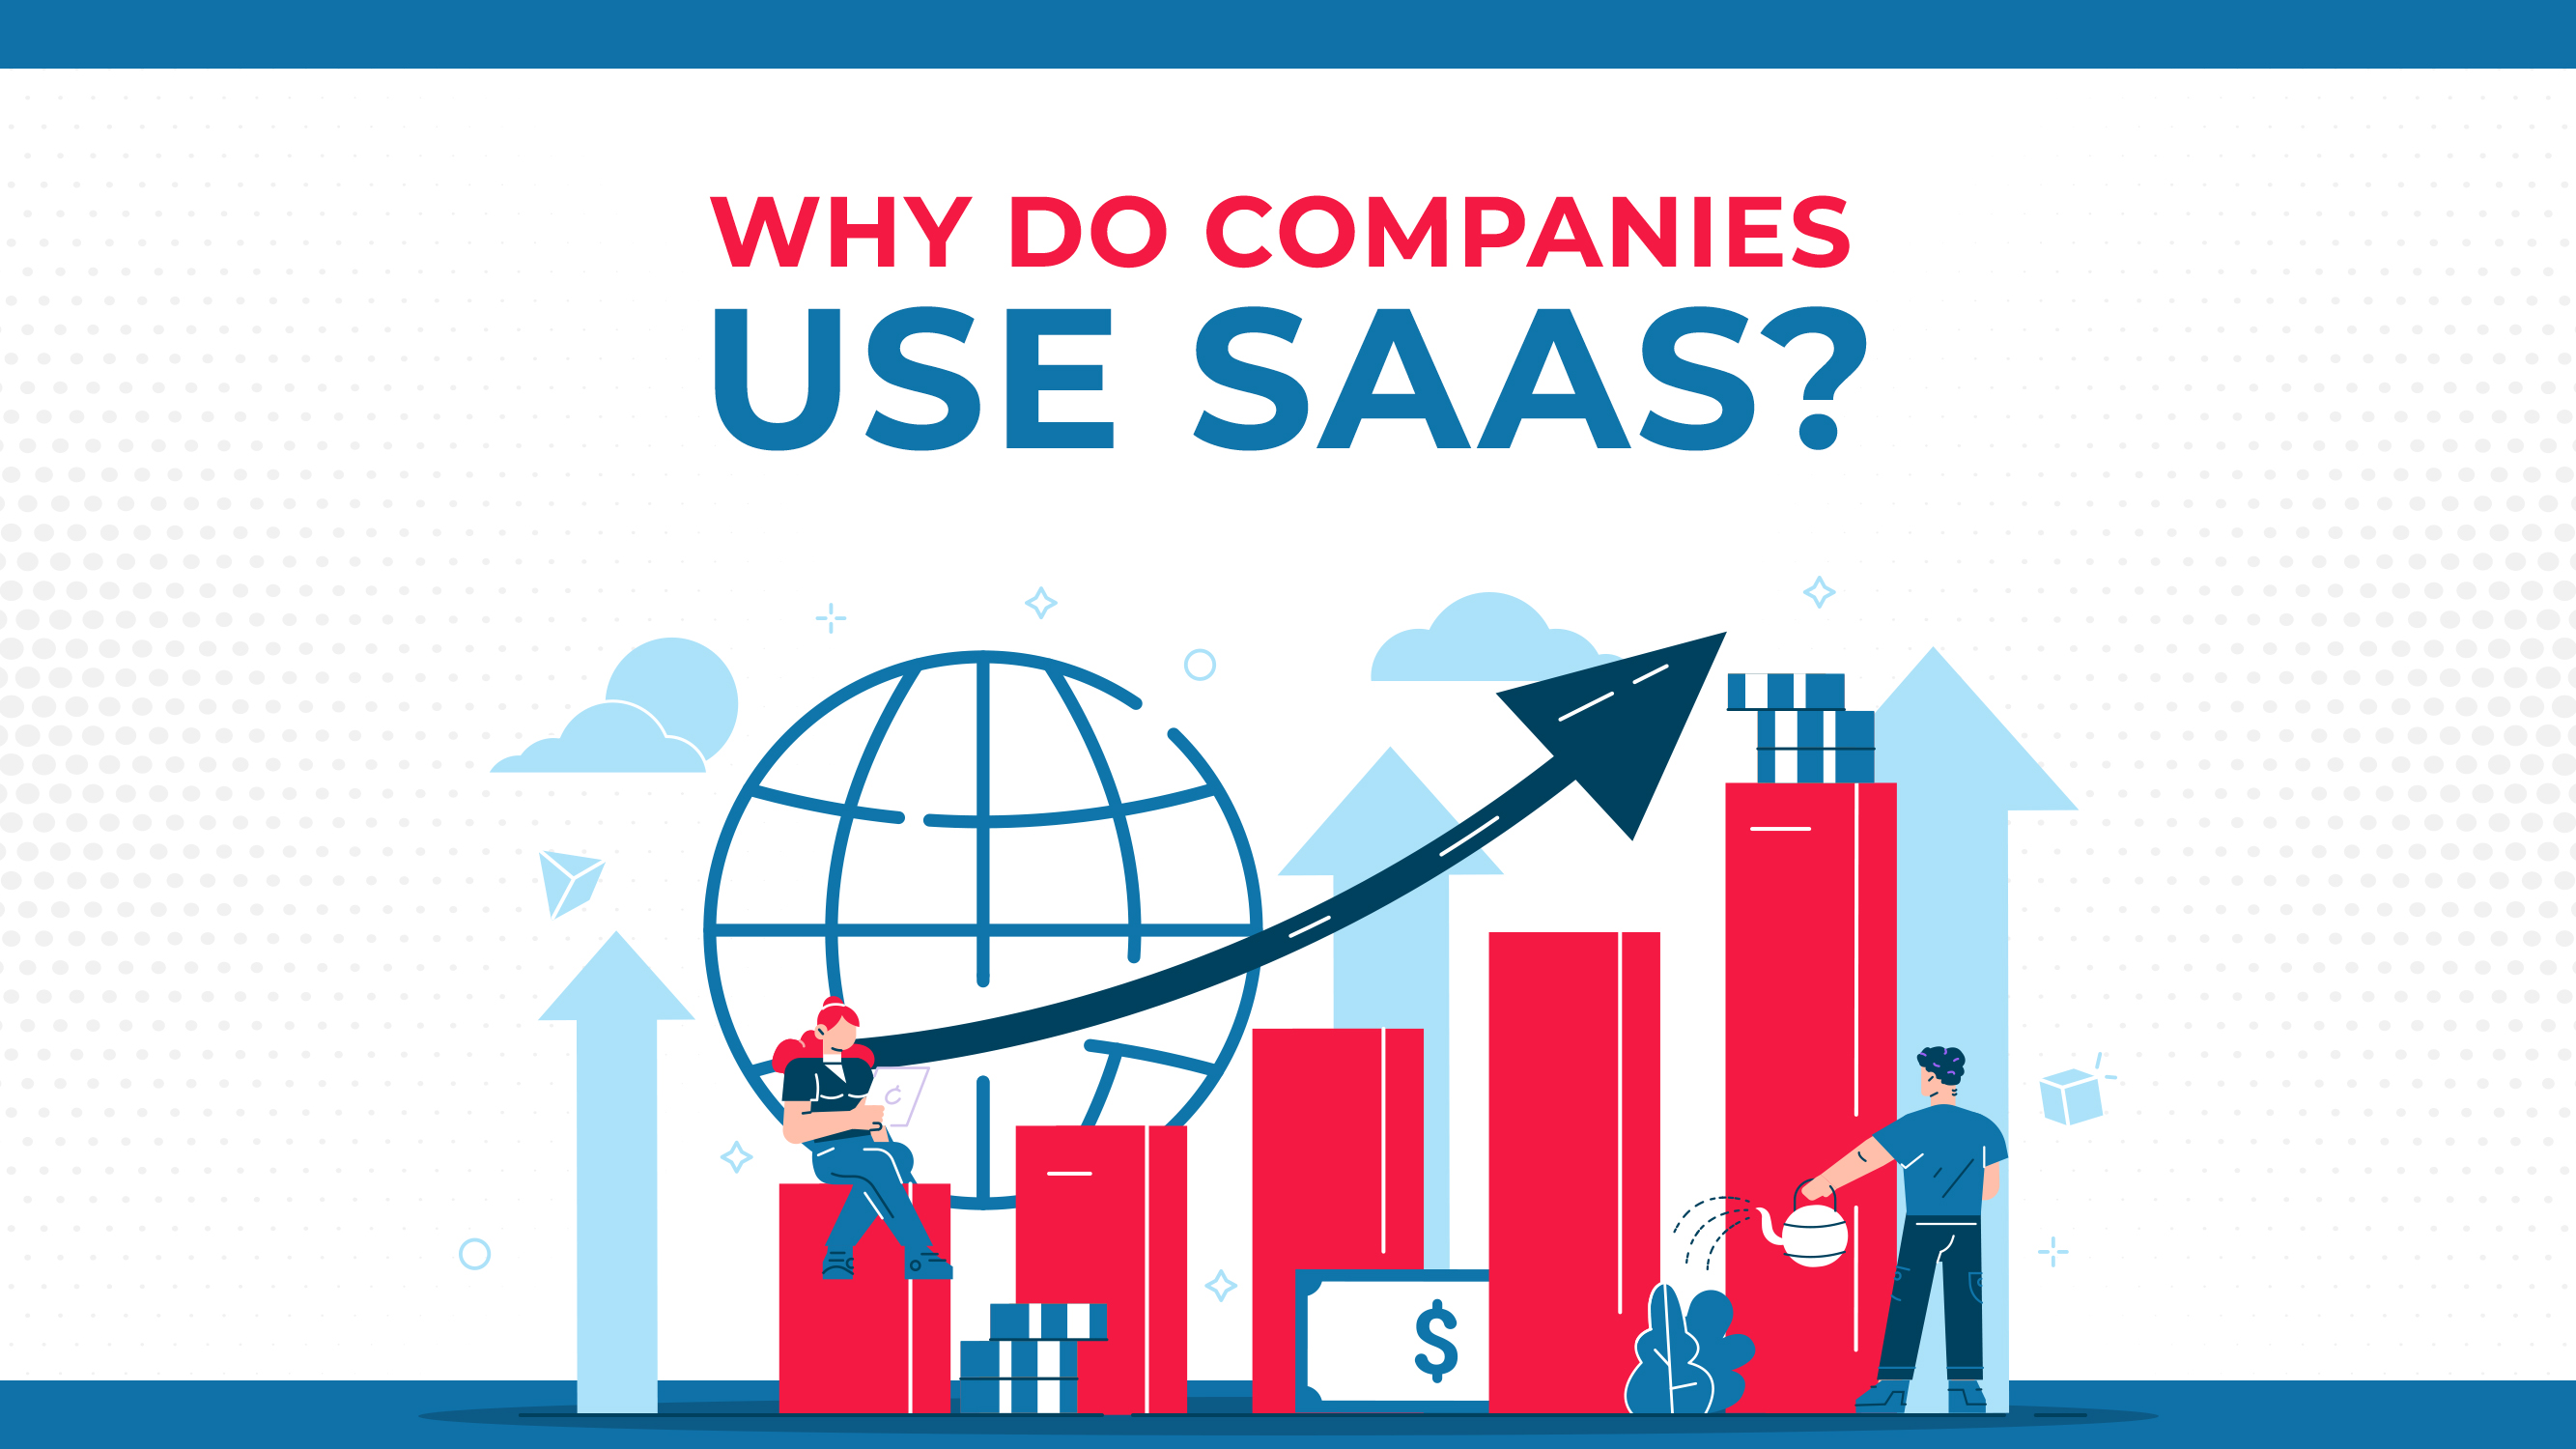 Why Do Companies Use SAAS?